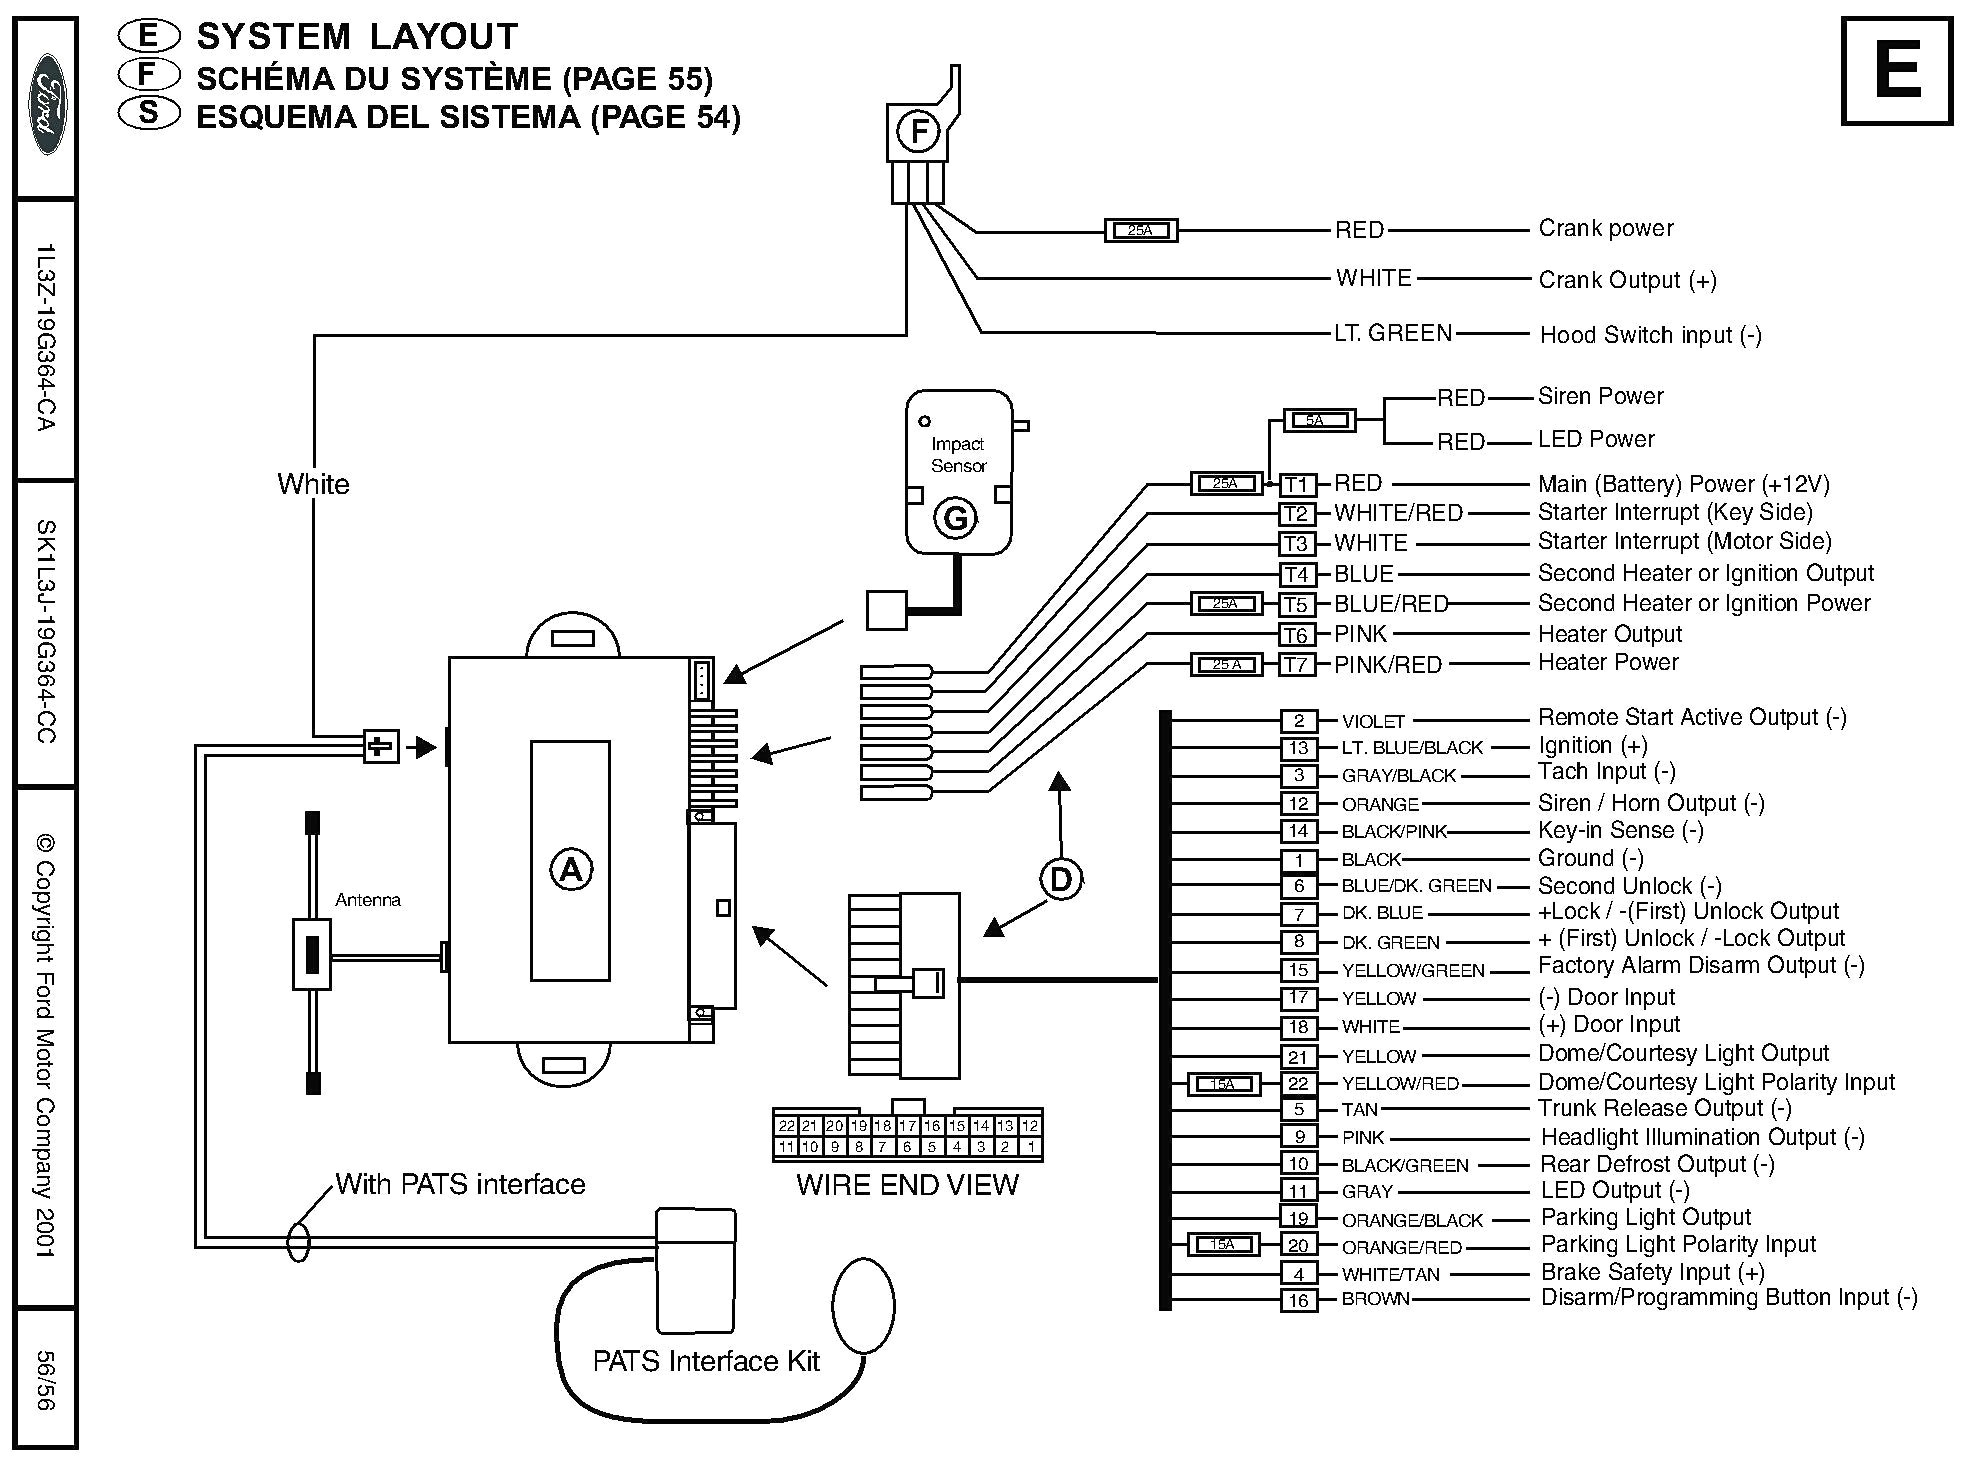 viper 150 alarm system wiring diagram free picture wiring diagram var 5404 viper car alarm systems wiring diagrams